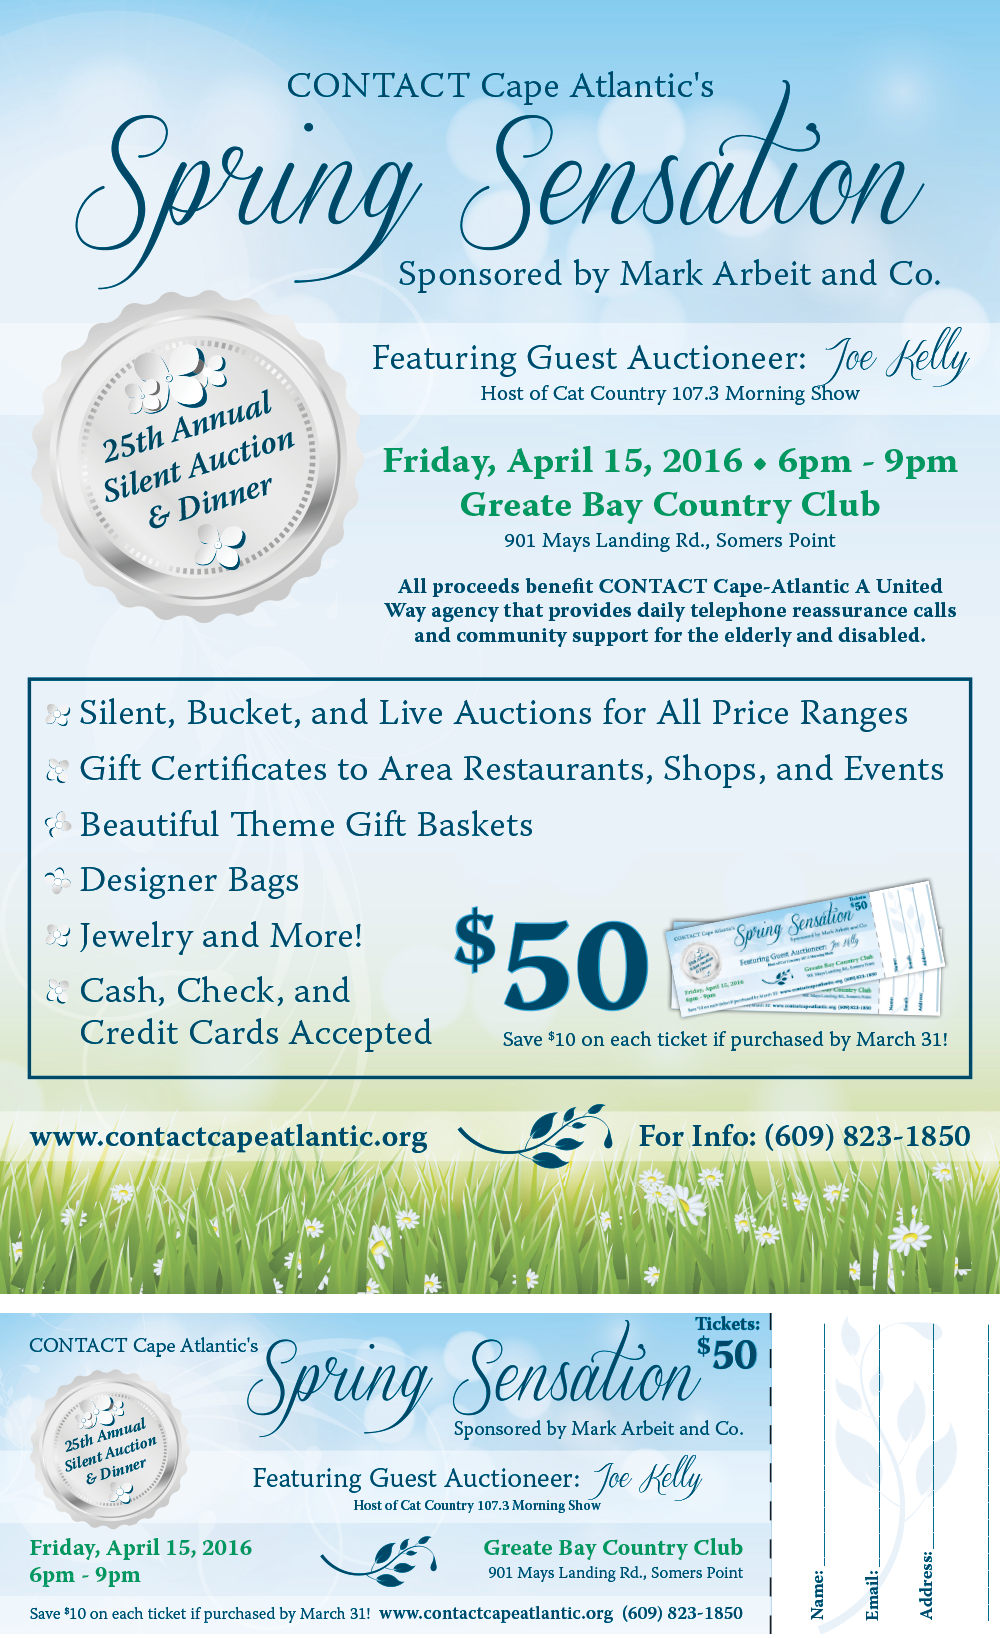 CONTACT Cape Atlantic Silent Auction Poster invitation ticket design